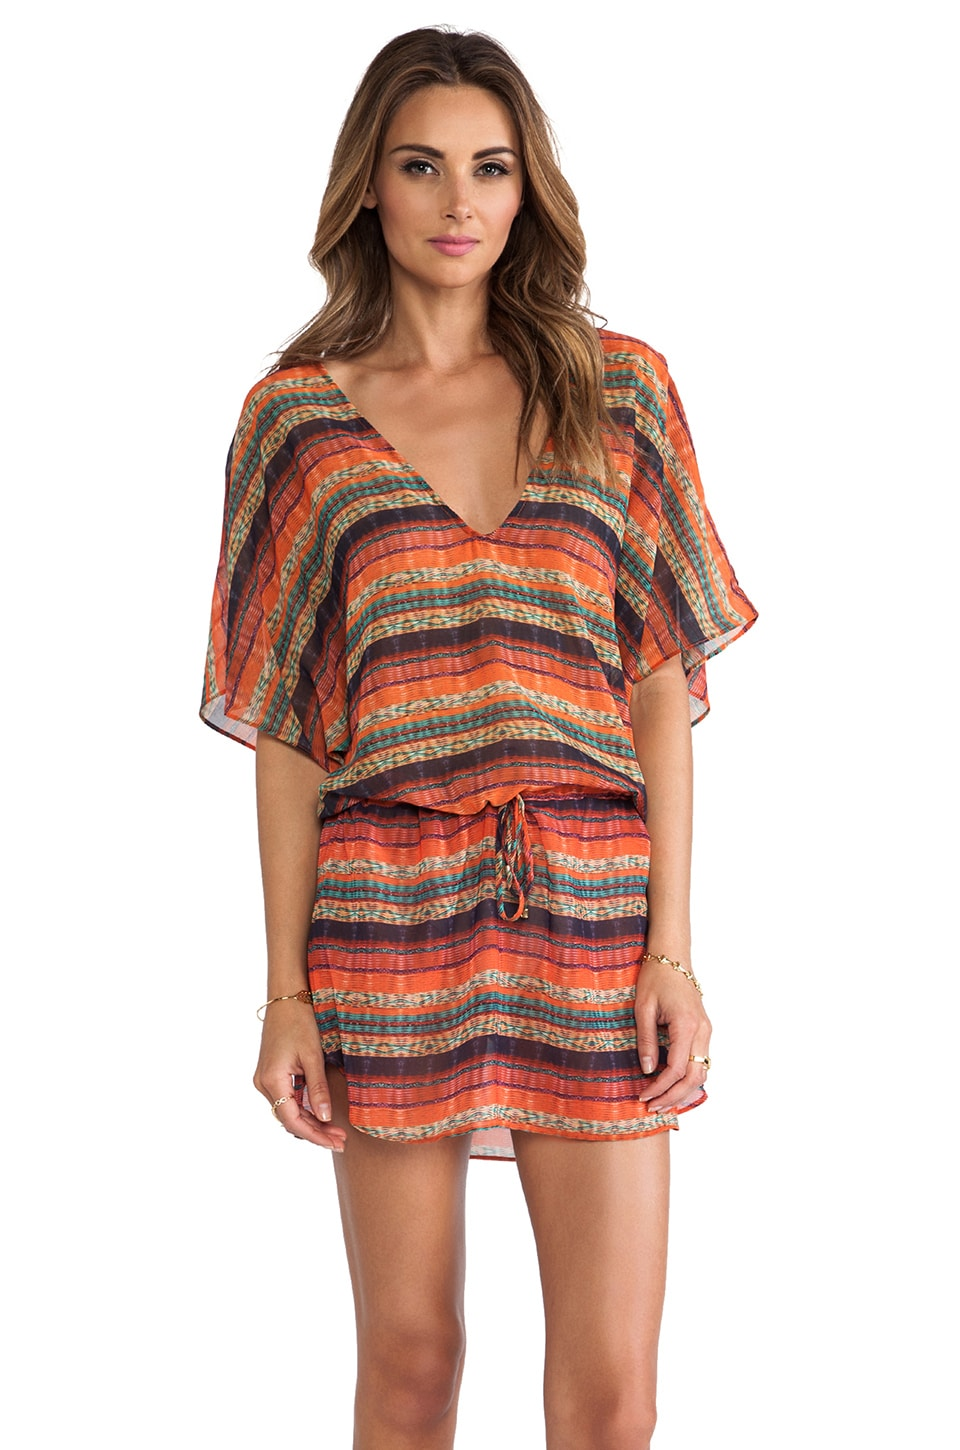 Vix Swimwear Potira Lory Caftan in Multi